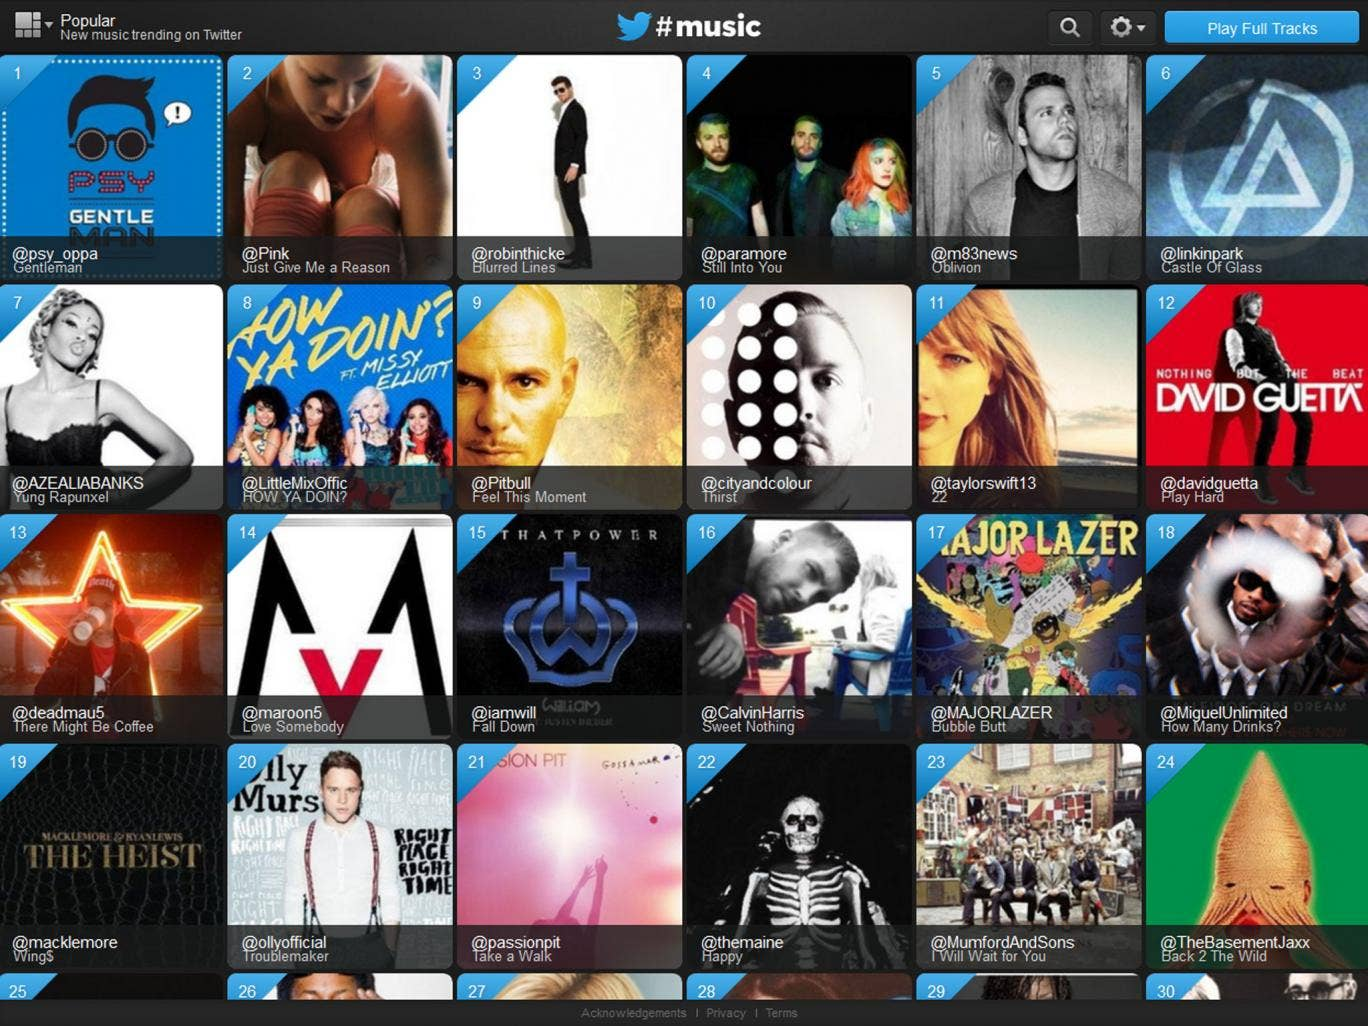 The new Twitter #music service